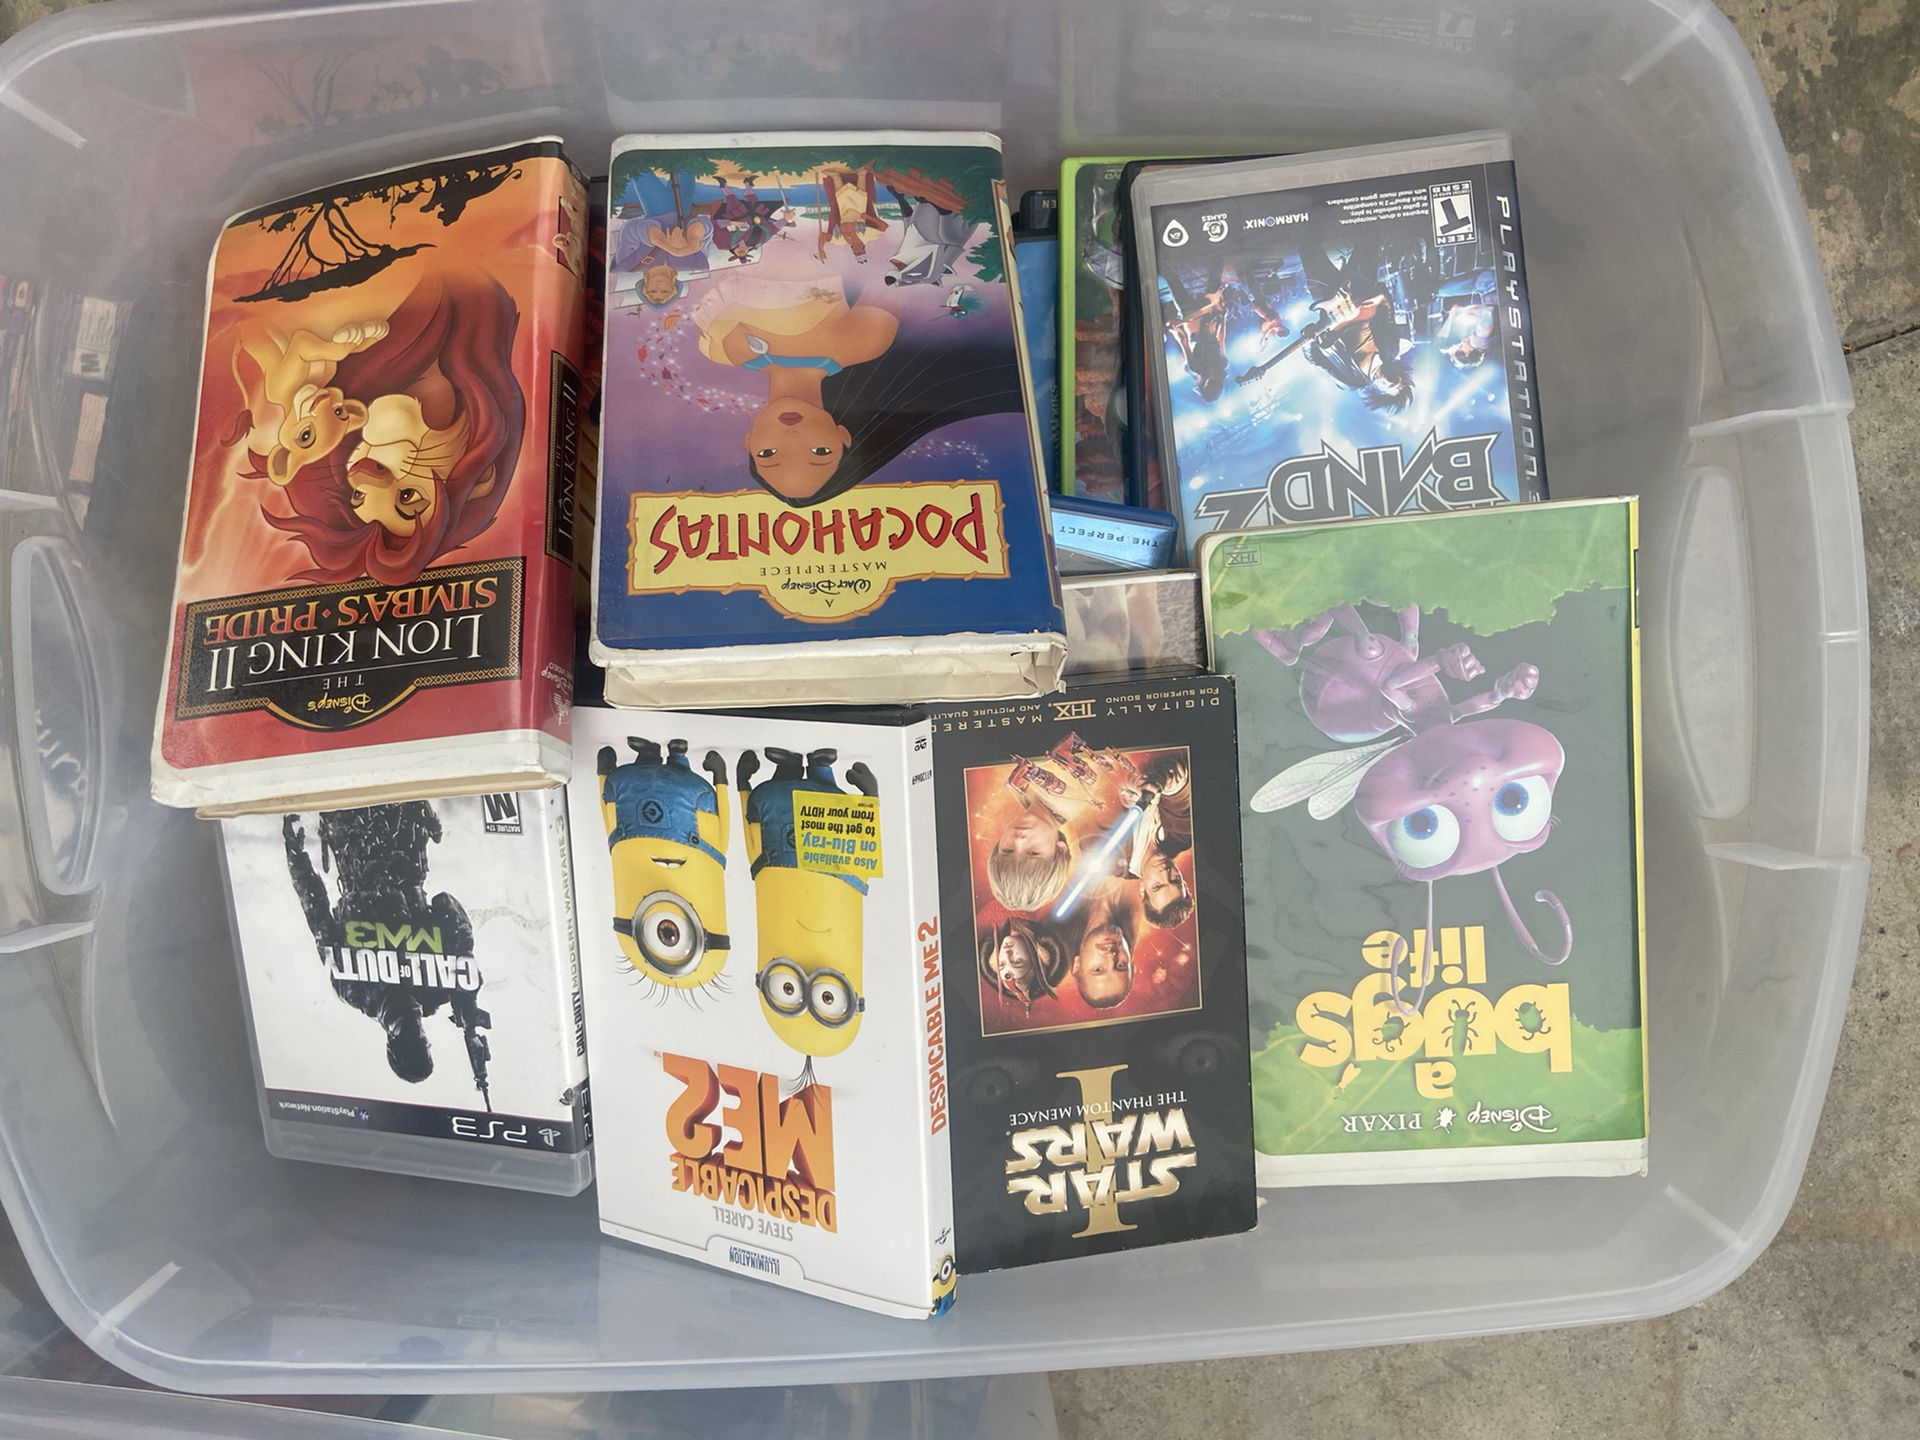 VHS tapes, DVDs, Blu-ray, PlayStation games rock band games